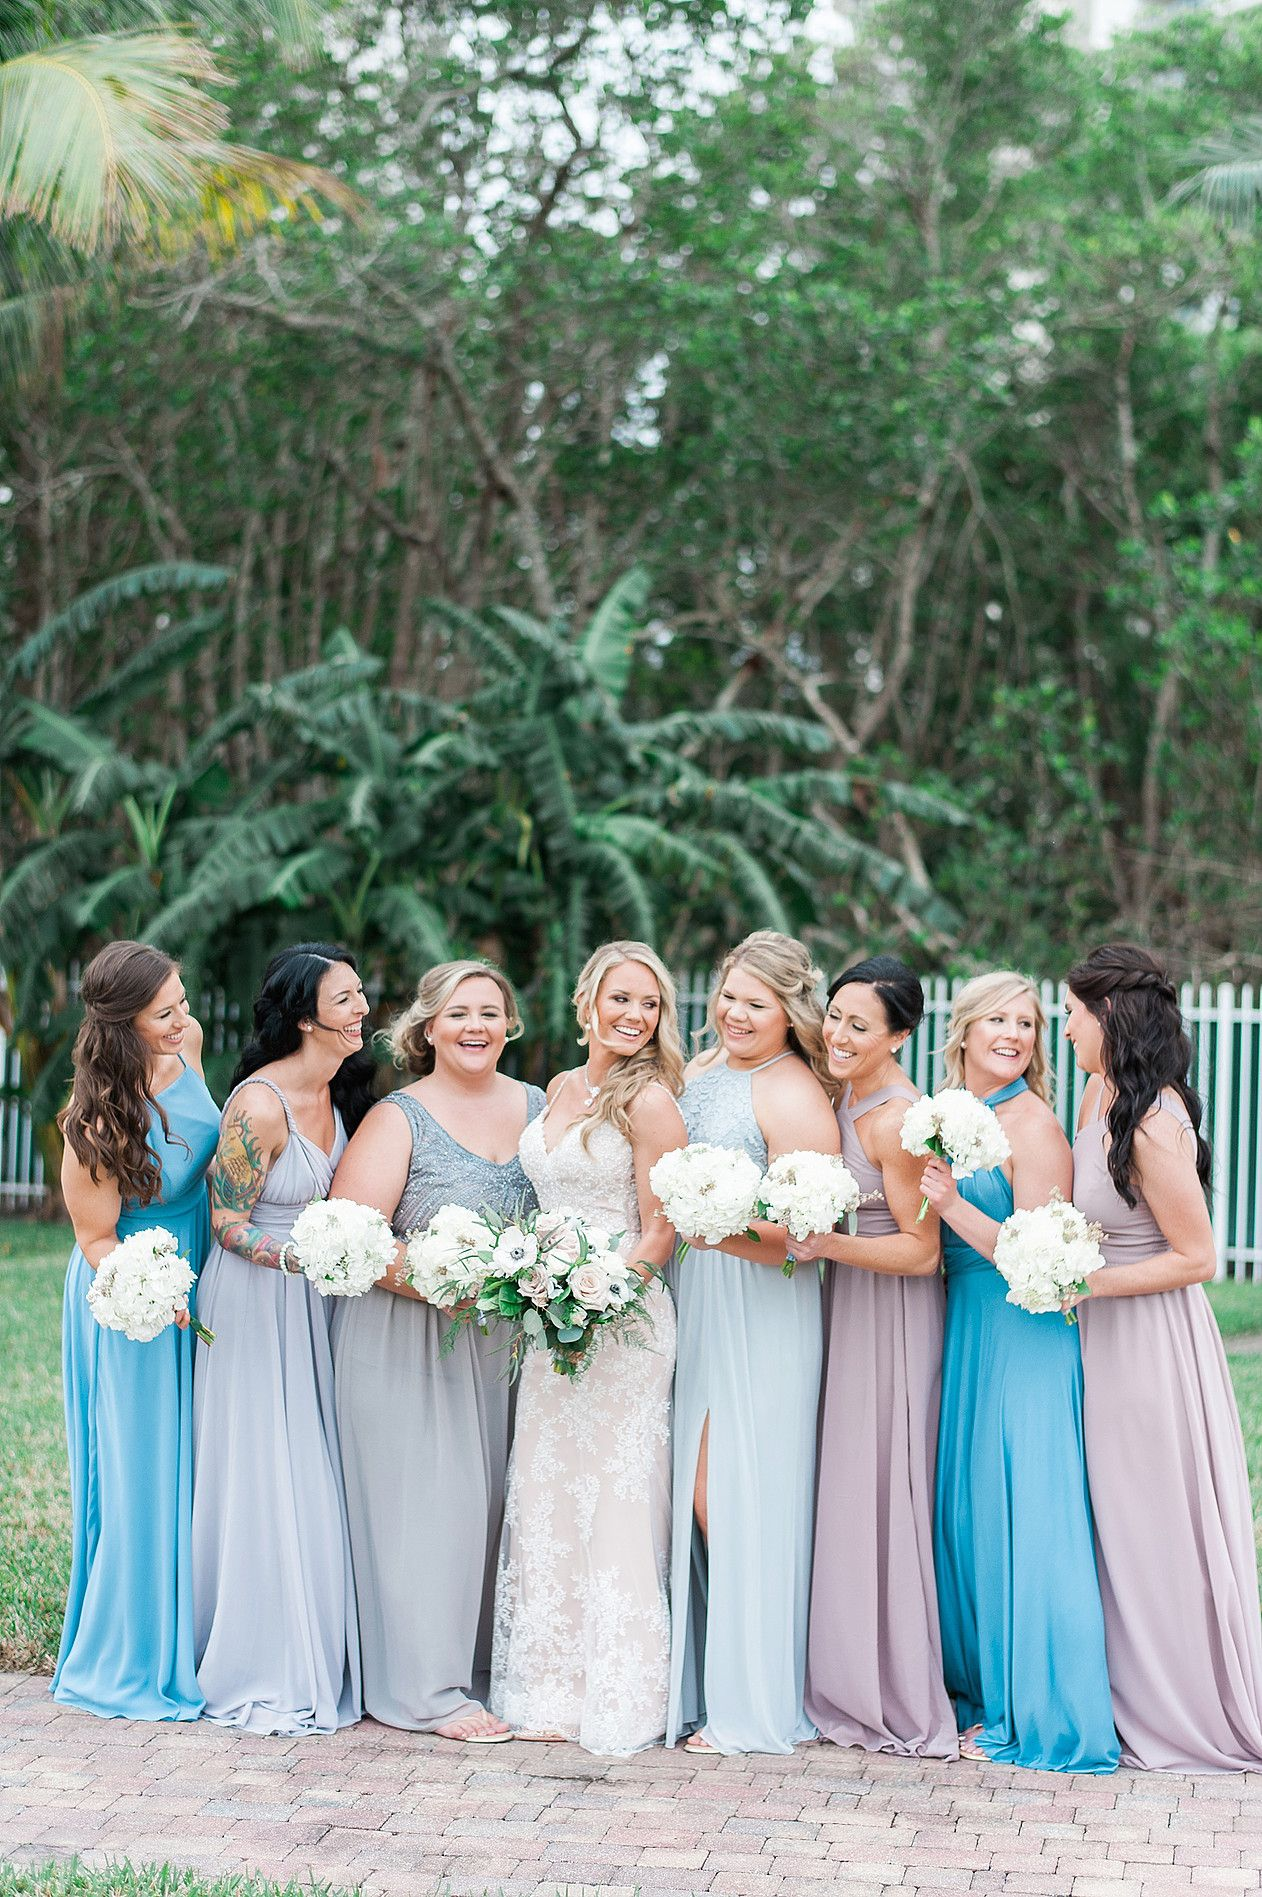 Stephanie Tanner White Orchid At Oasis Wedding Ashlee Nicole Photography Fort Myers Florida Wedding Photograp Wedding White Orchids Stephanie Tanner